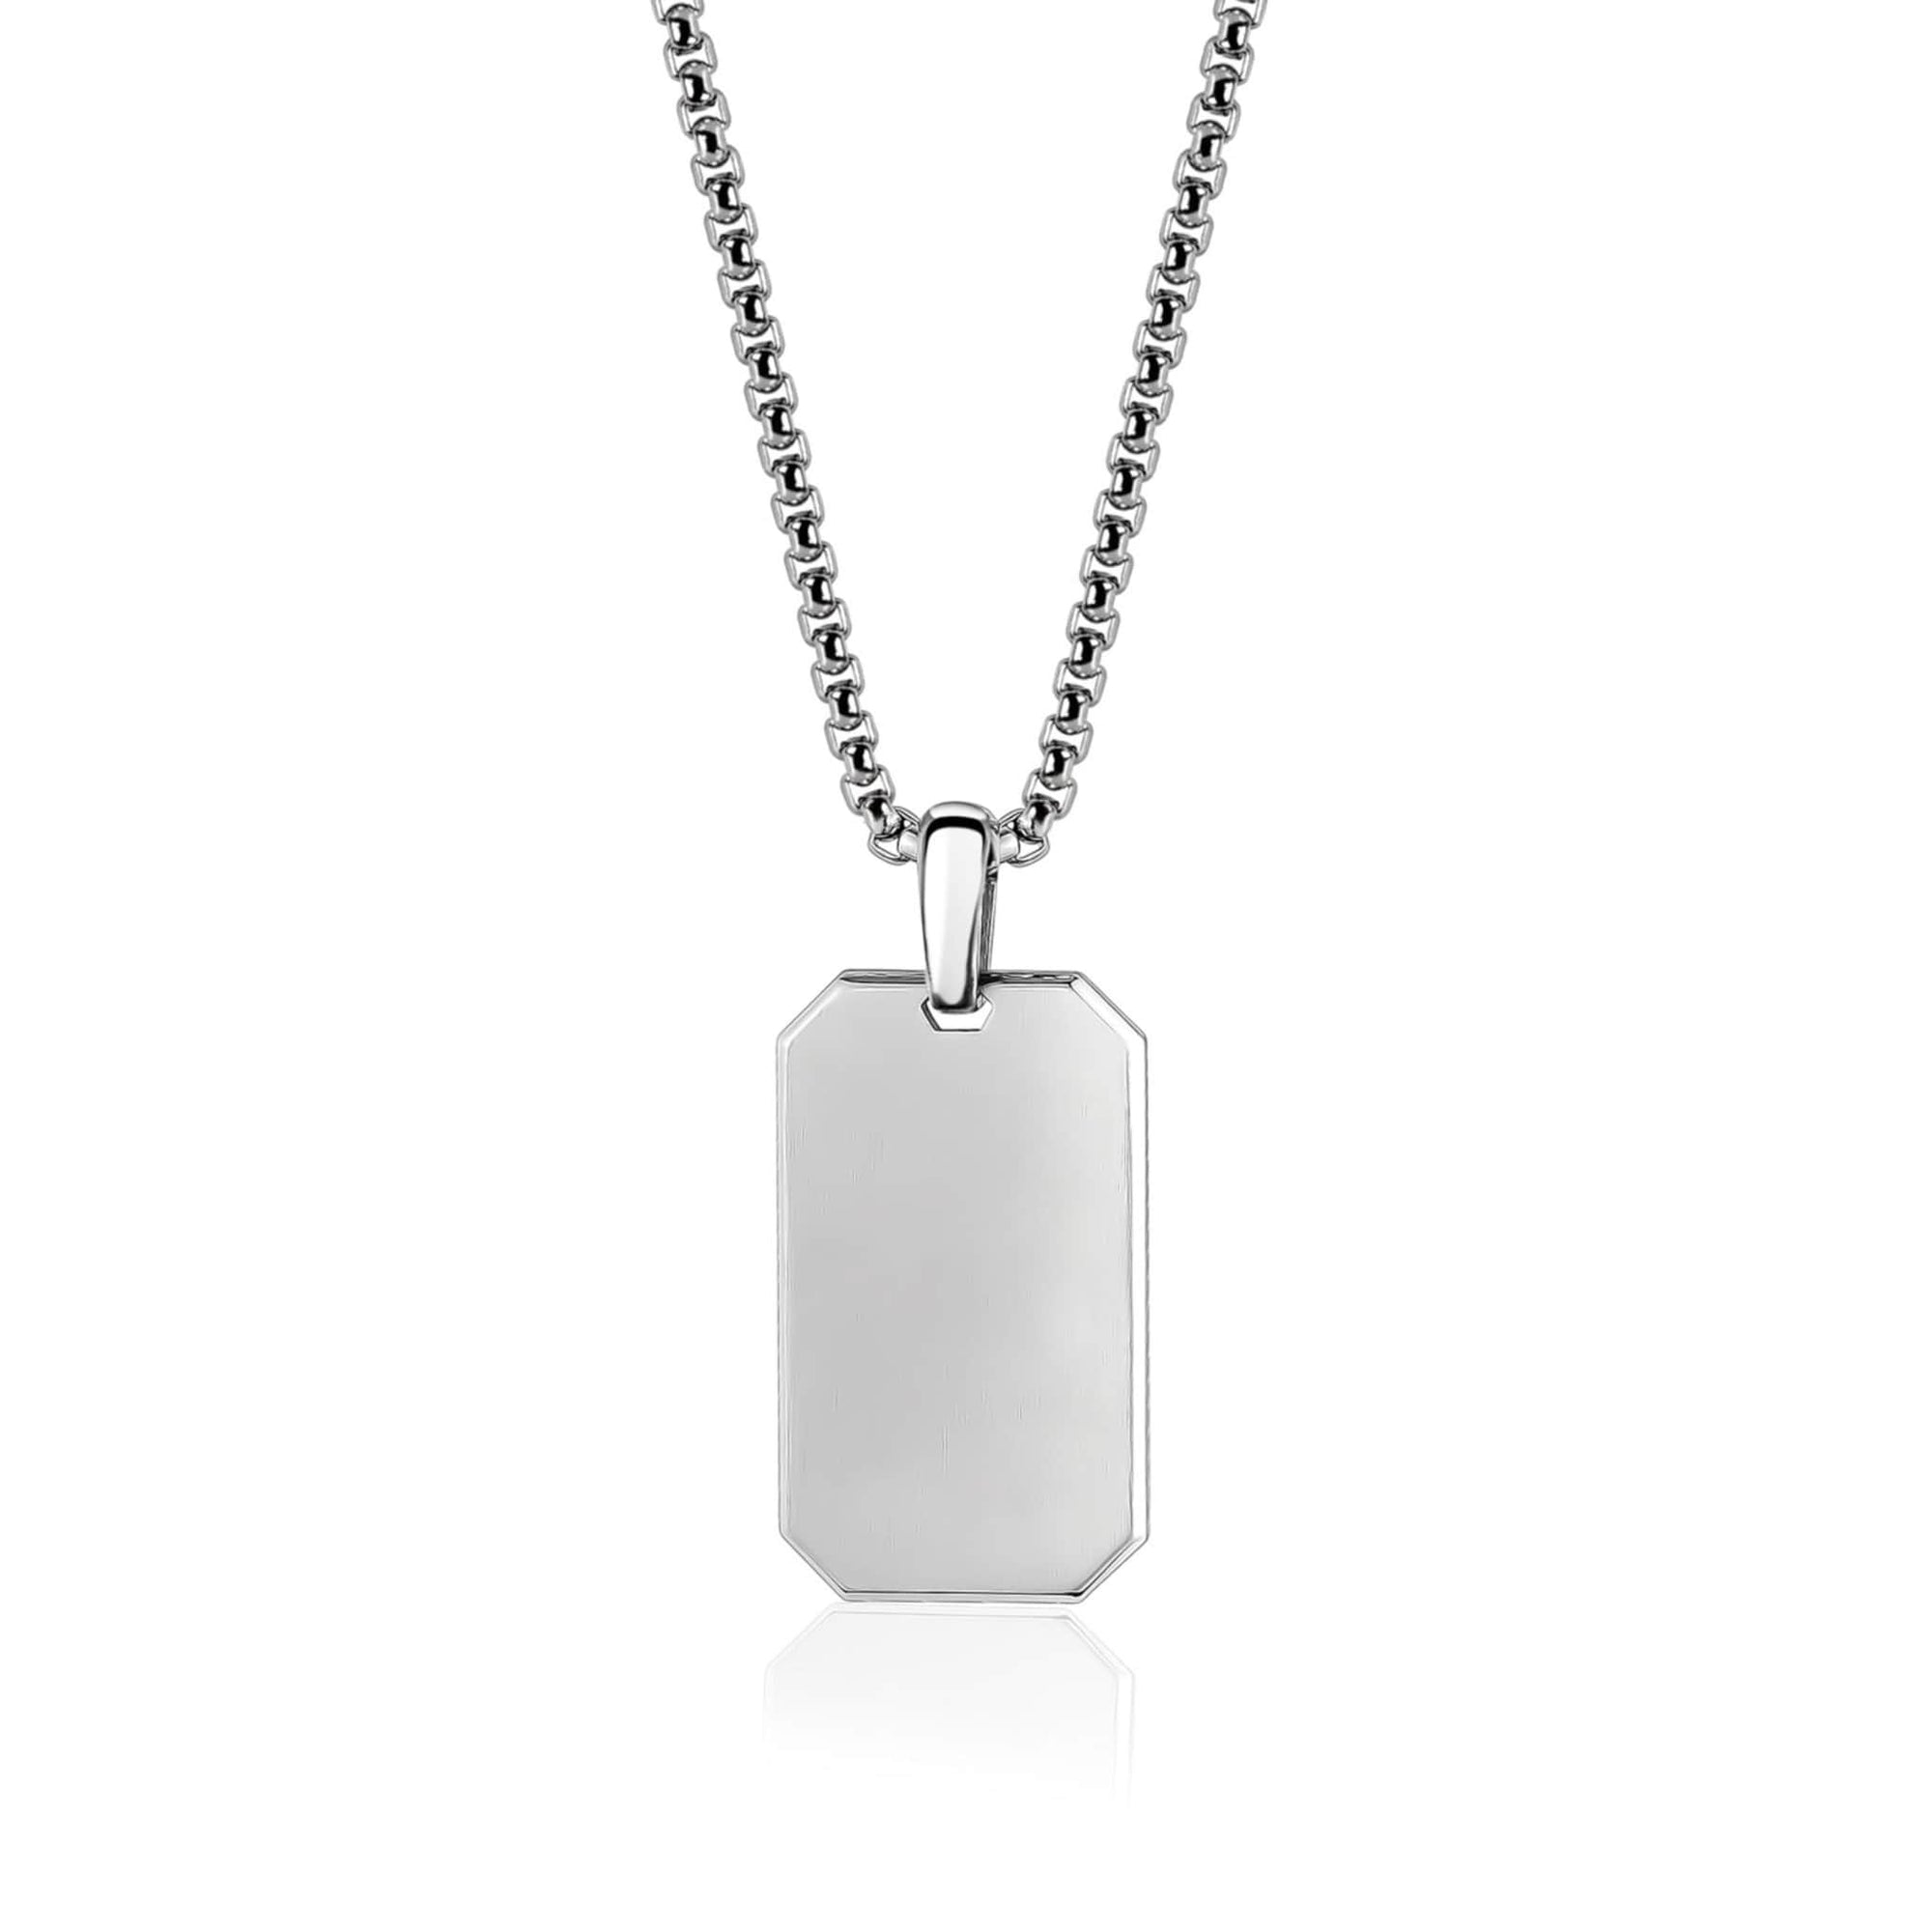 "Matte Engravable Steel Dog Tag Pendant W/ 26""  Chain at Arman's Jewellers"